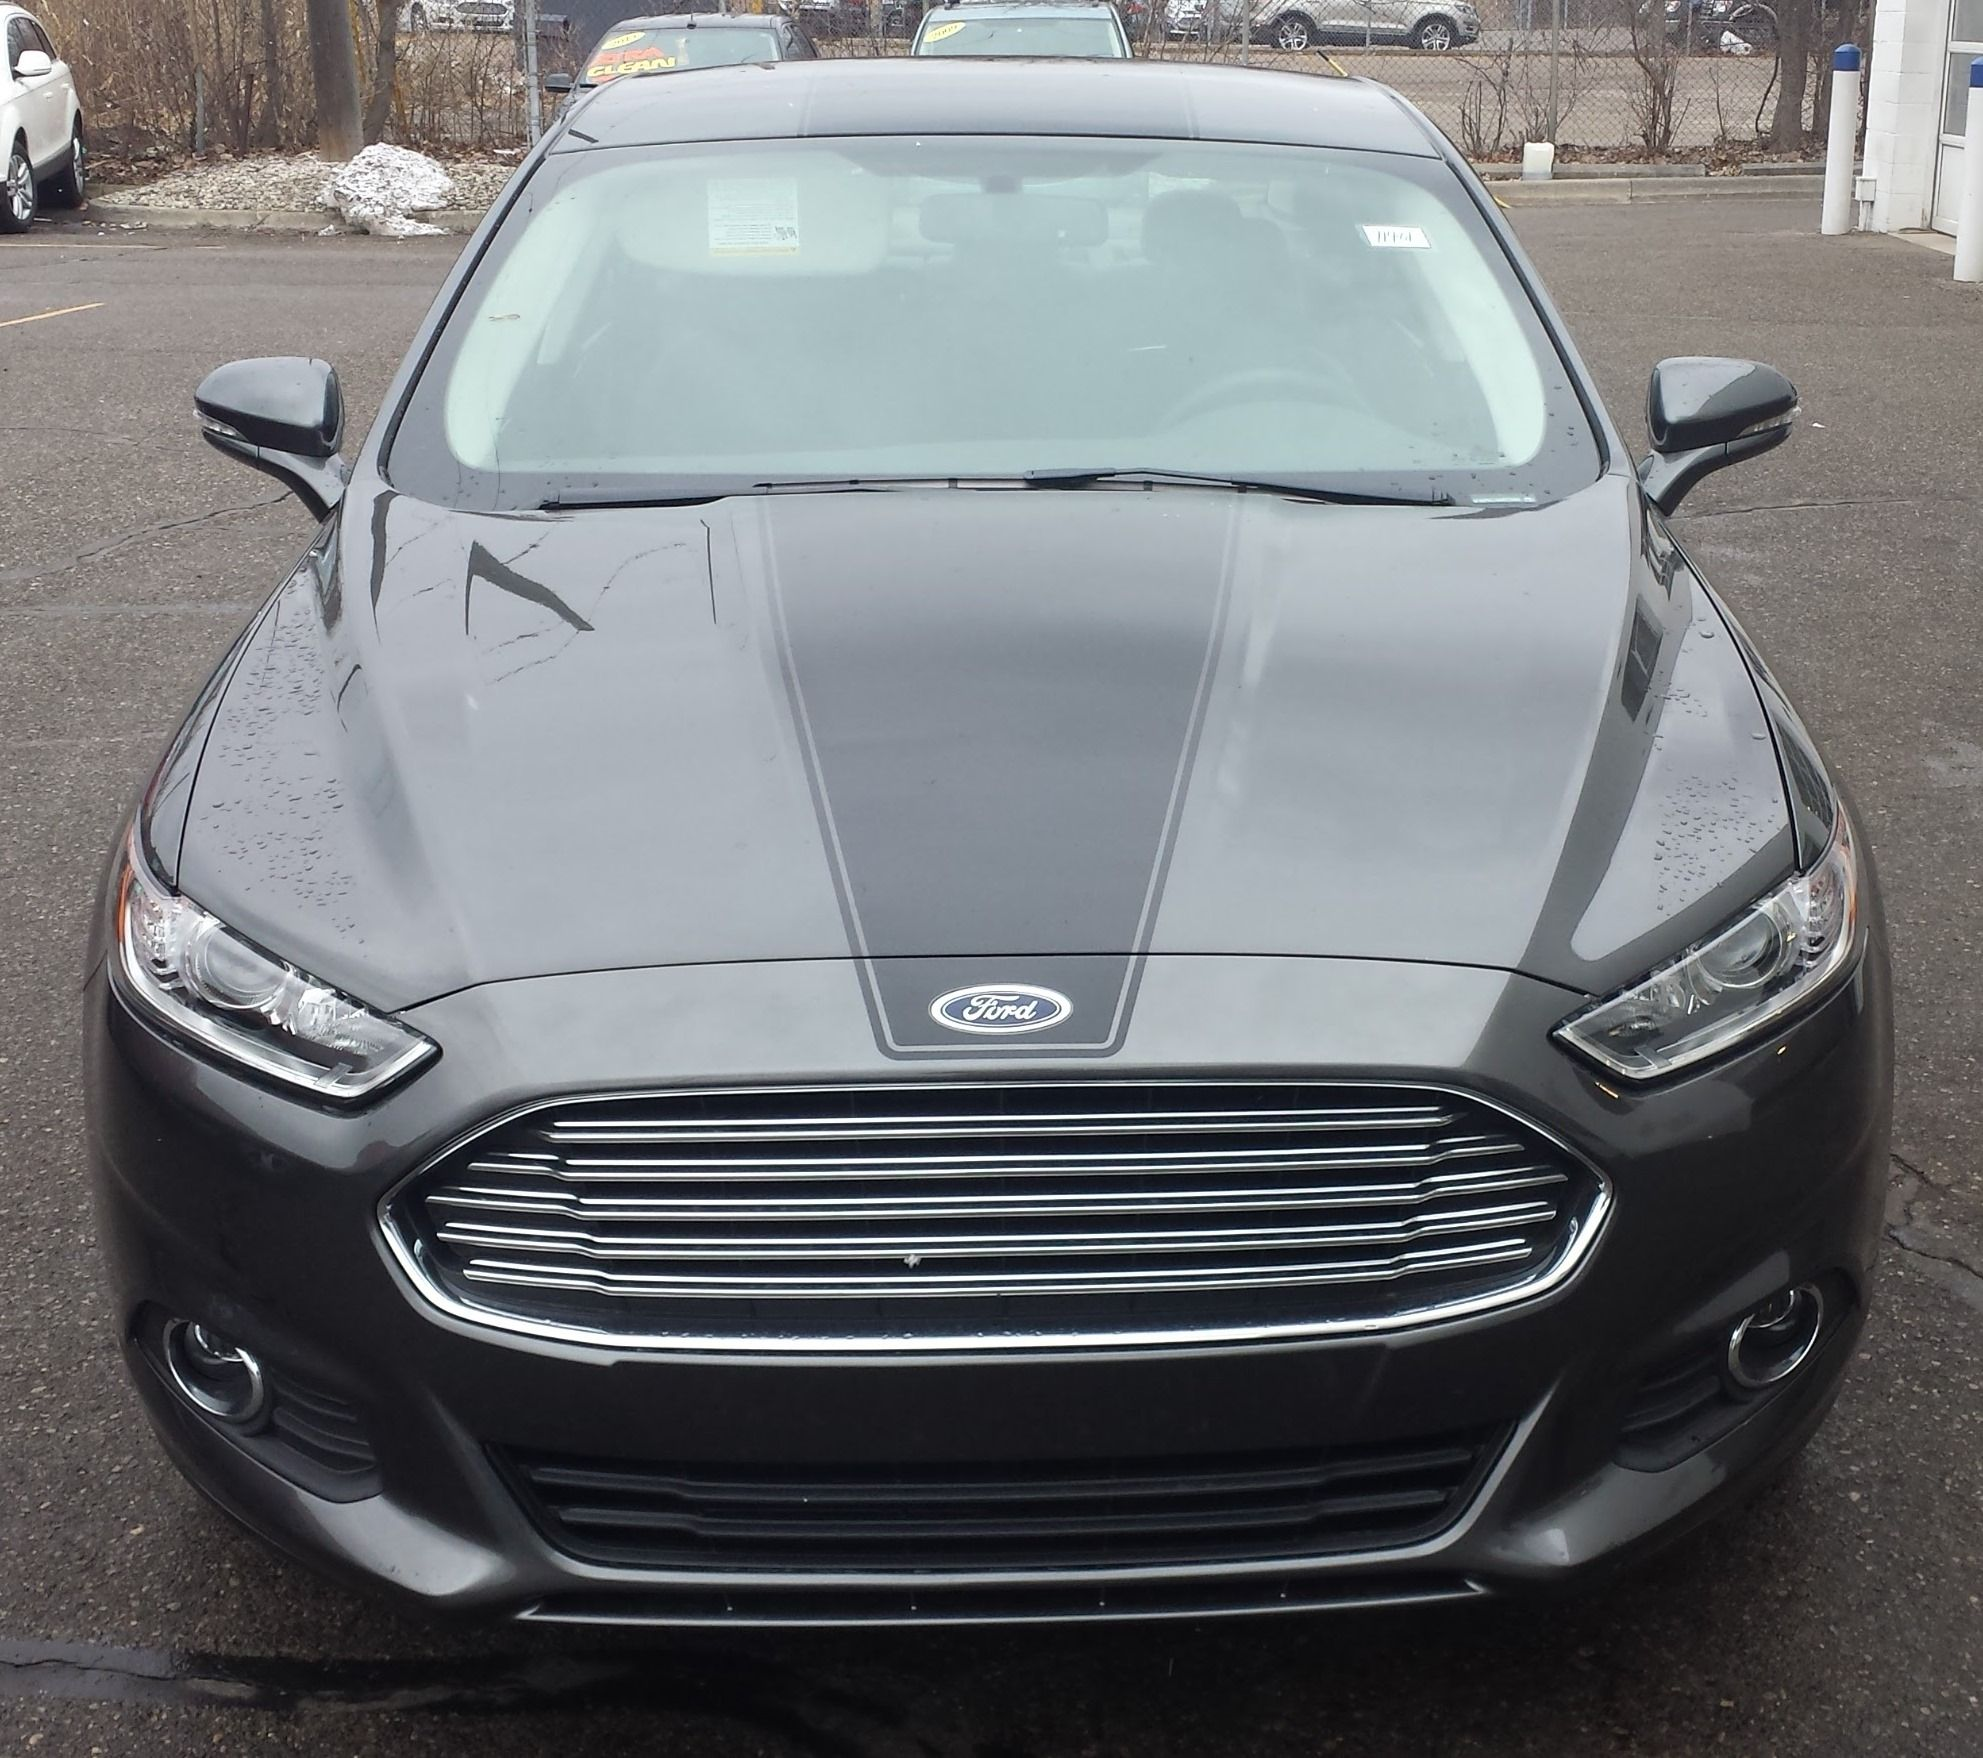 2016 Ford Fusion With Gloss Black With Single Racing Stripe On Hood Roof Trunk Ford Fusion Ford Fusion Custom Ford